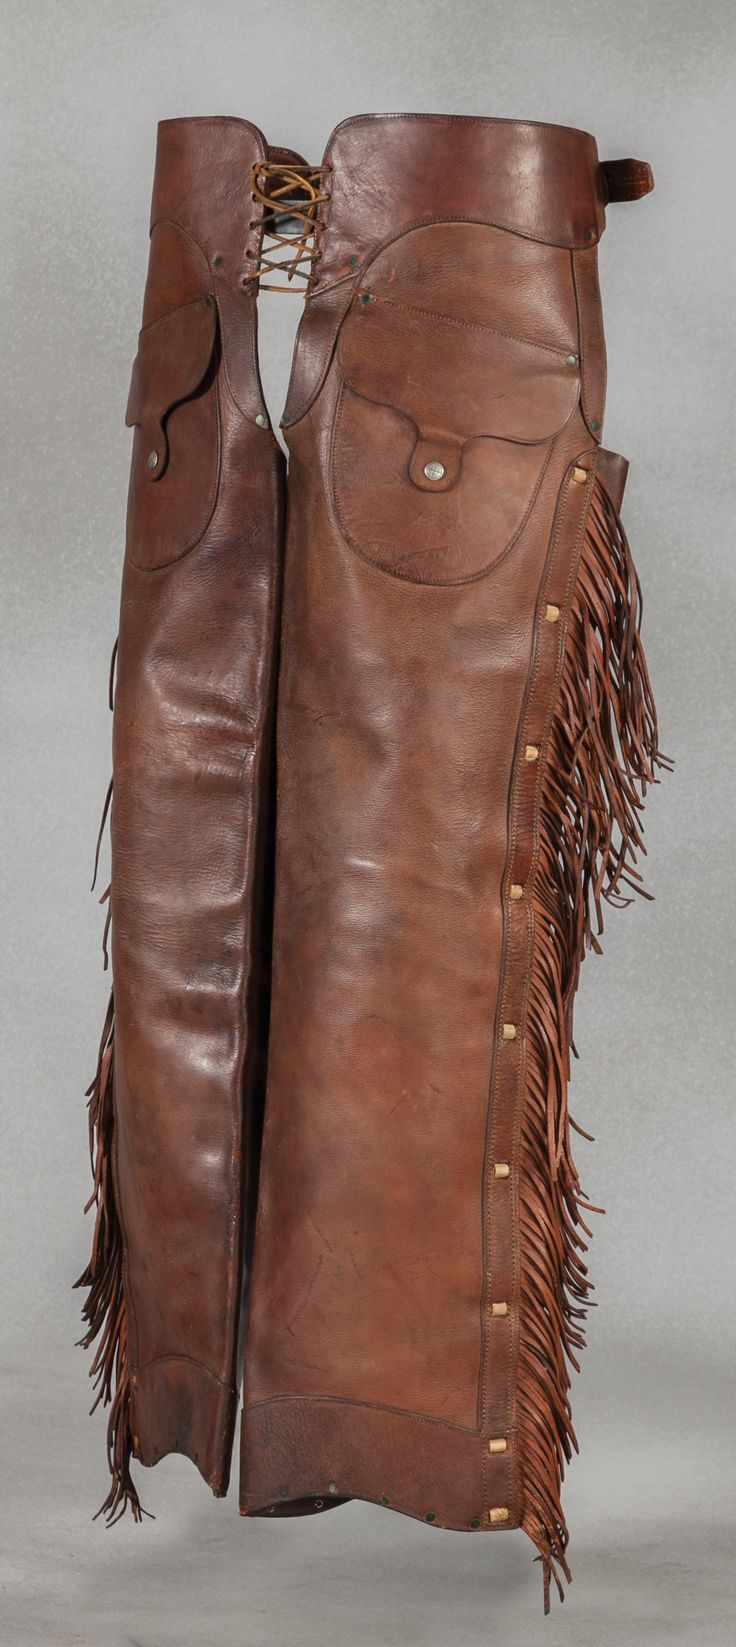 """Rare F. J. Villaescusa Marked Chaps. Early Territorial marked shotgun chaps. Laced sides and full length fringe with outside pockets. Well-marked with the scarce cartouche """"F.J. Viilaesusa - Tucson A.T."""""""